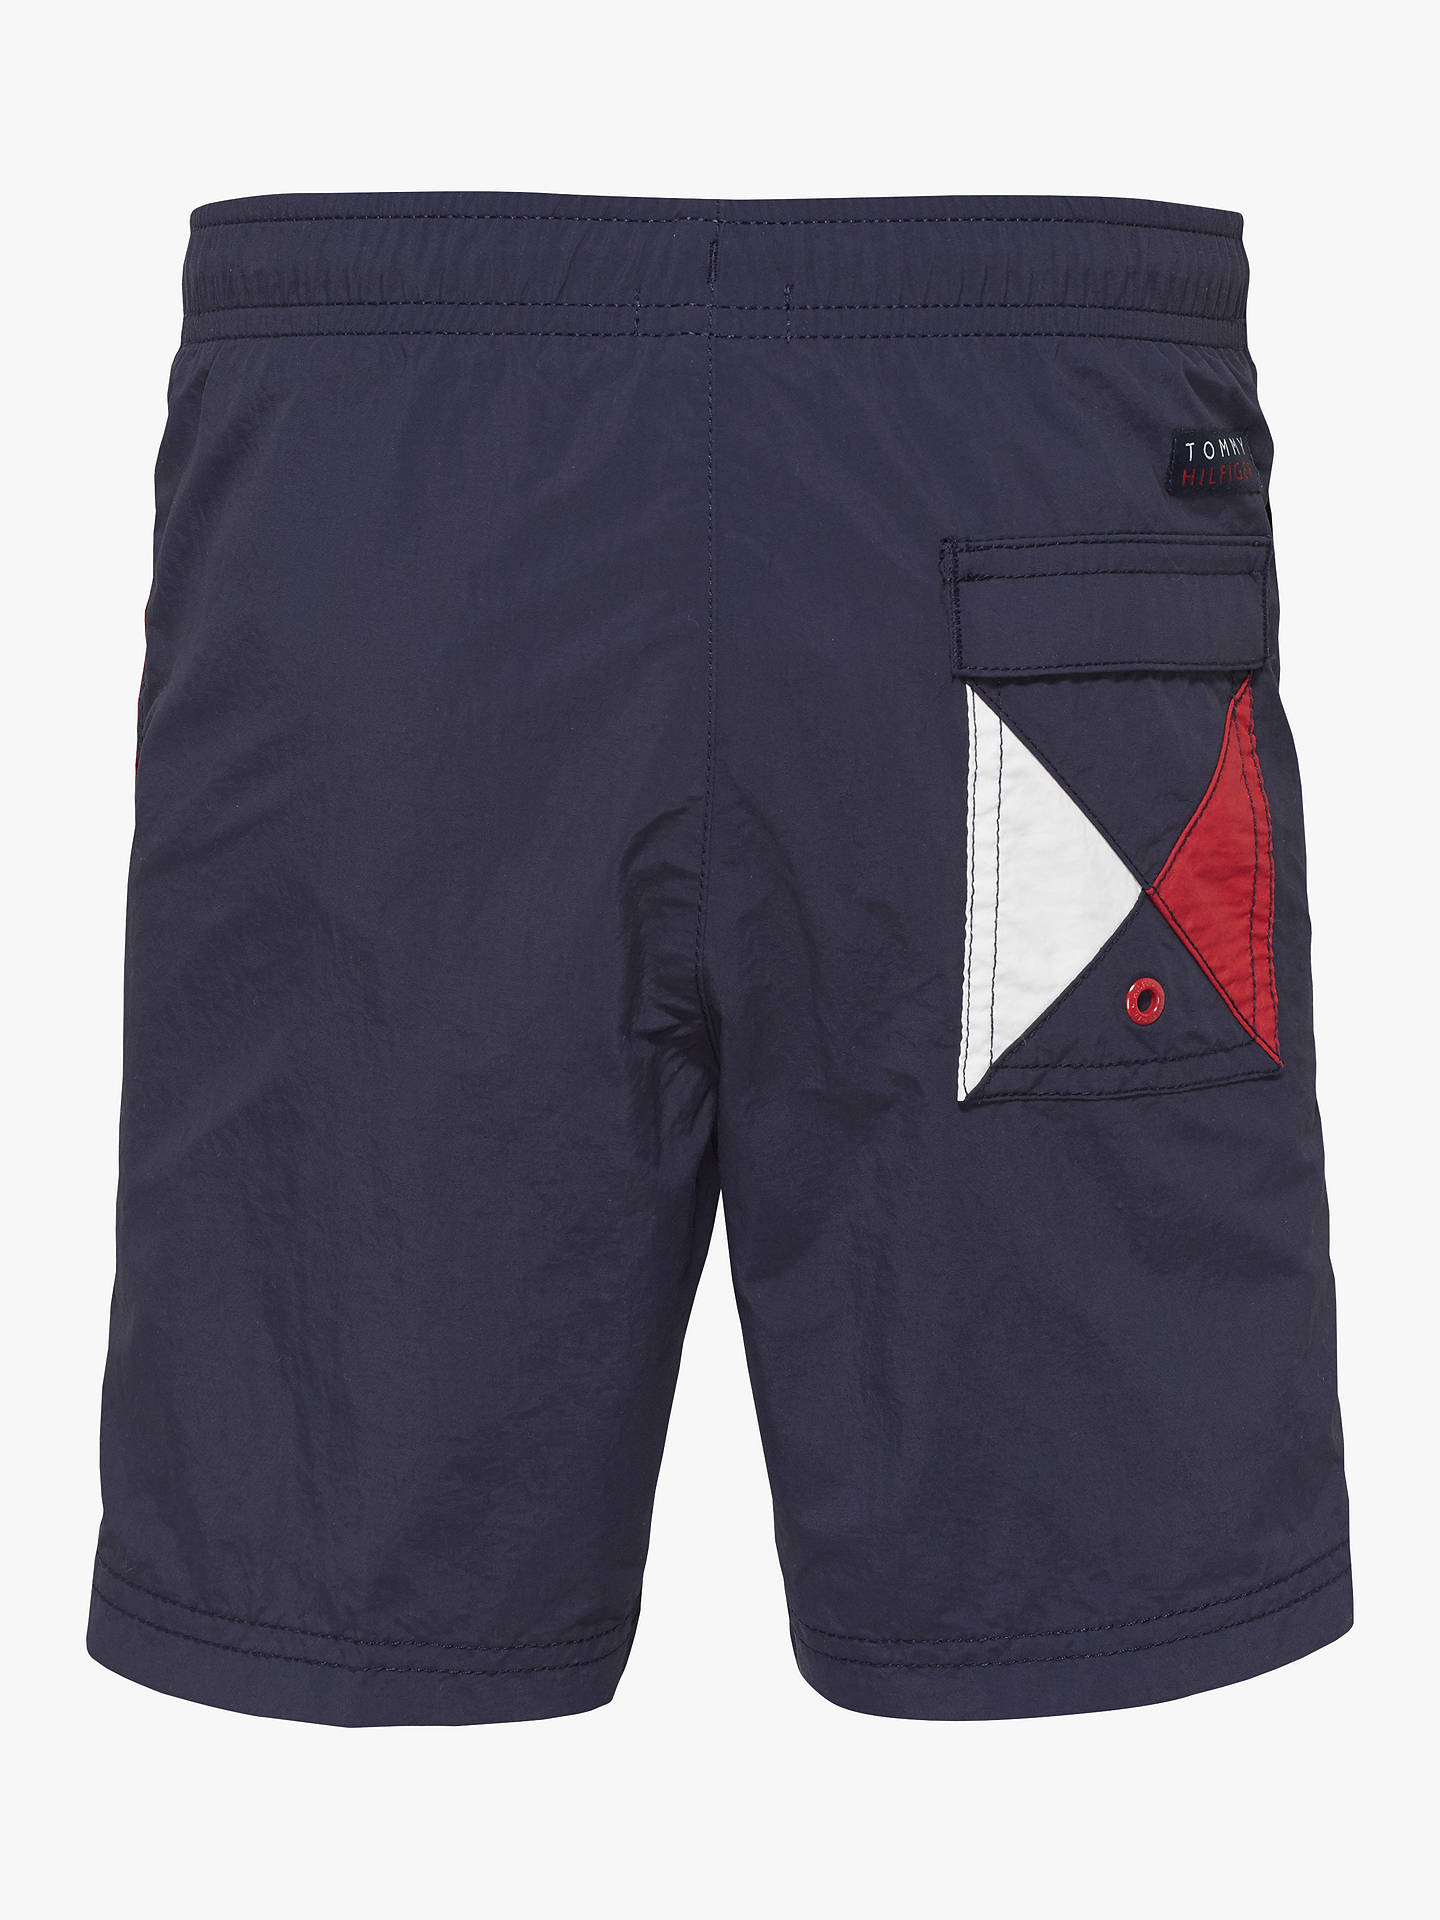 4524445ff ... Buy Tommy Hilfiger Boys' Flag Swimming Shorts, Navy, 10-12 years Online